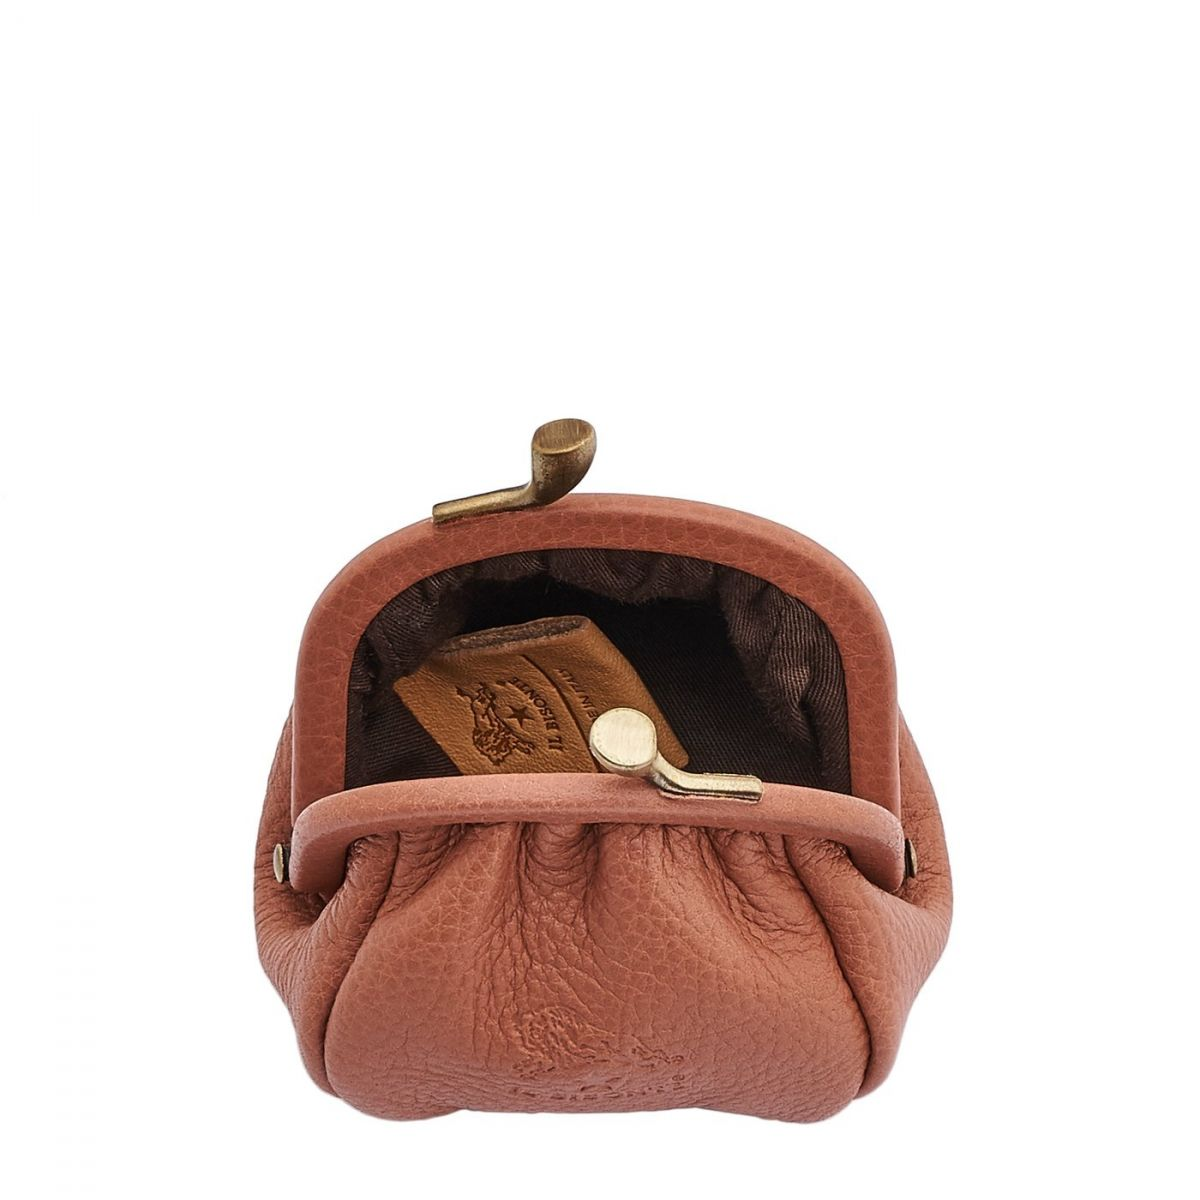 Women's Coin Purse in Cowhide Leather SCP016 color Pink Pepper | Details